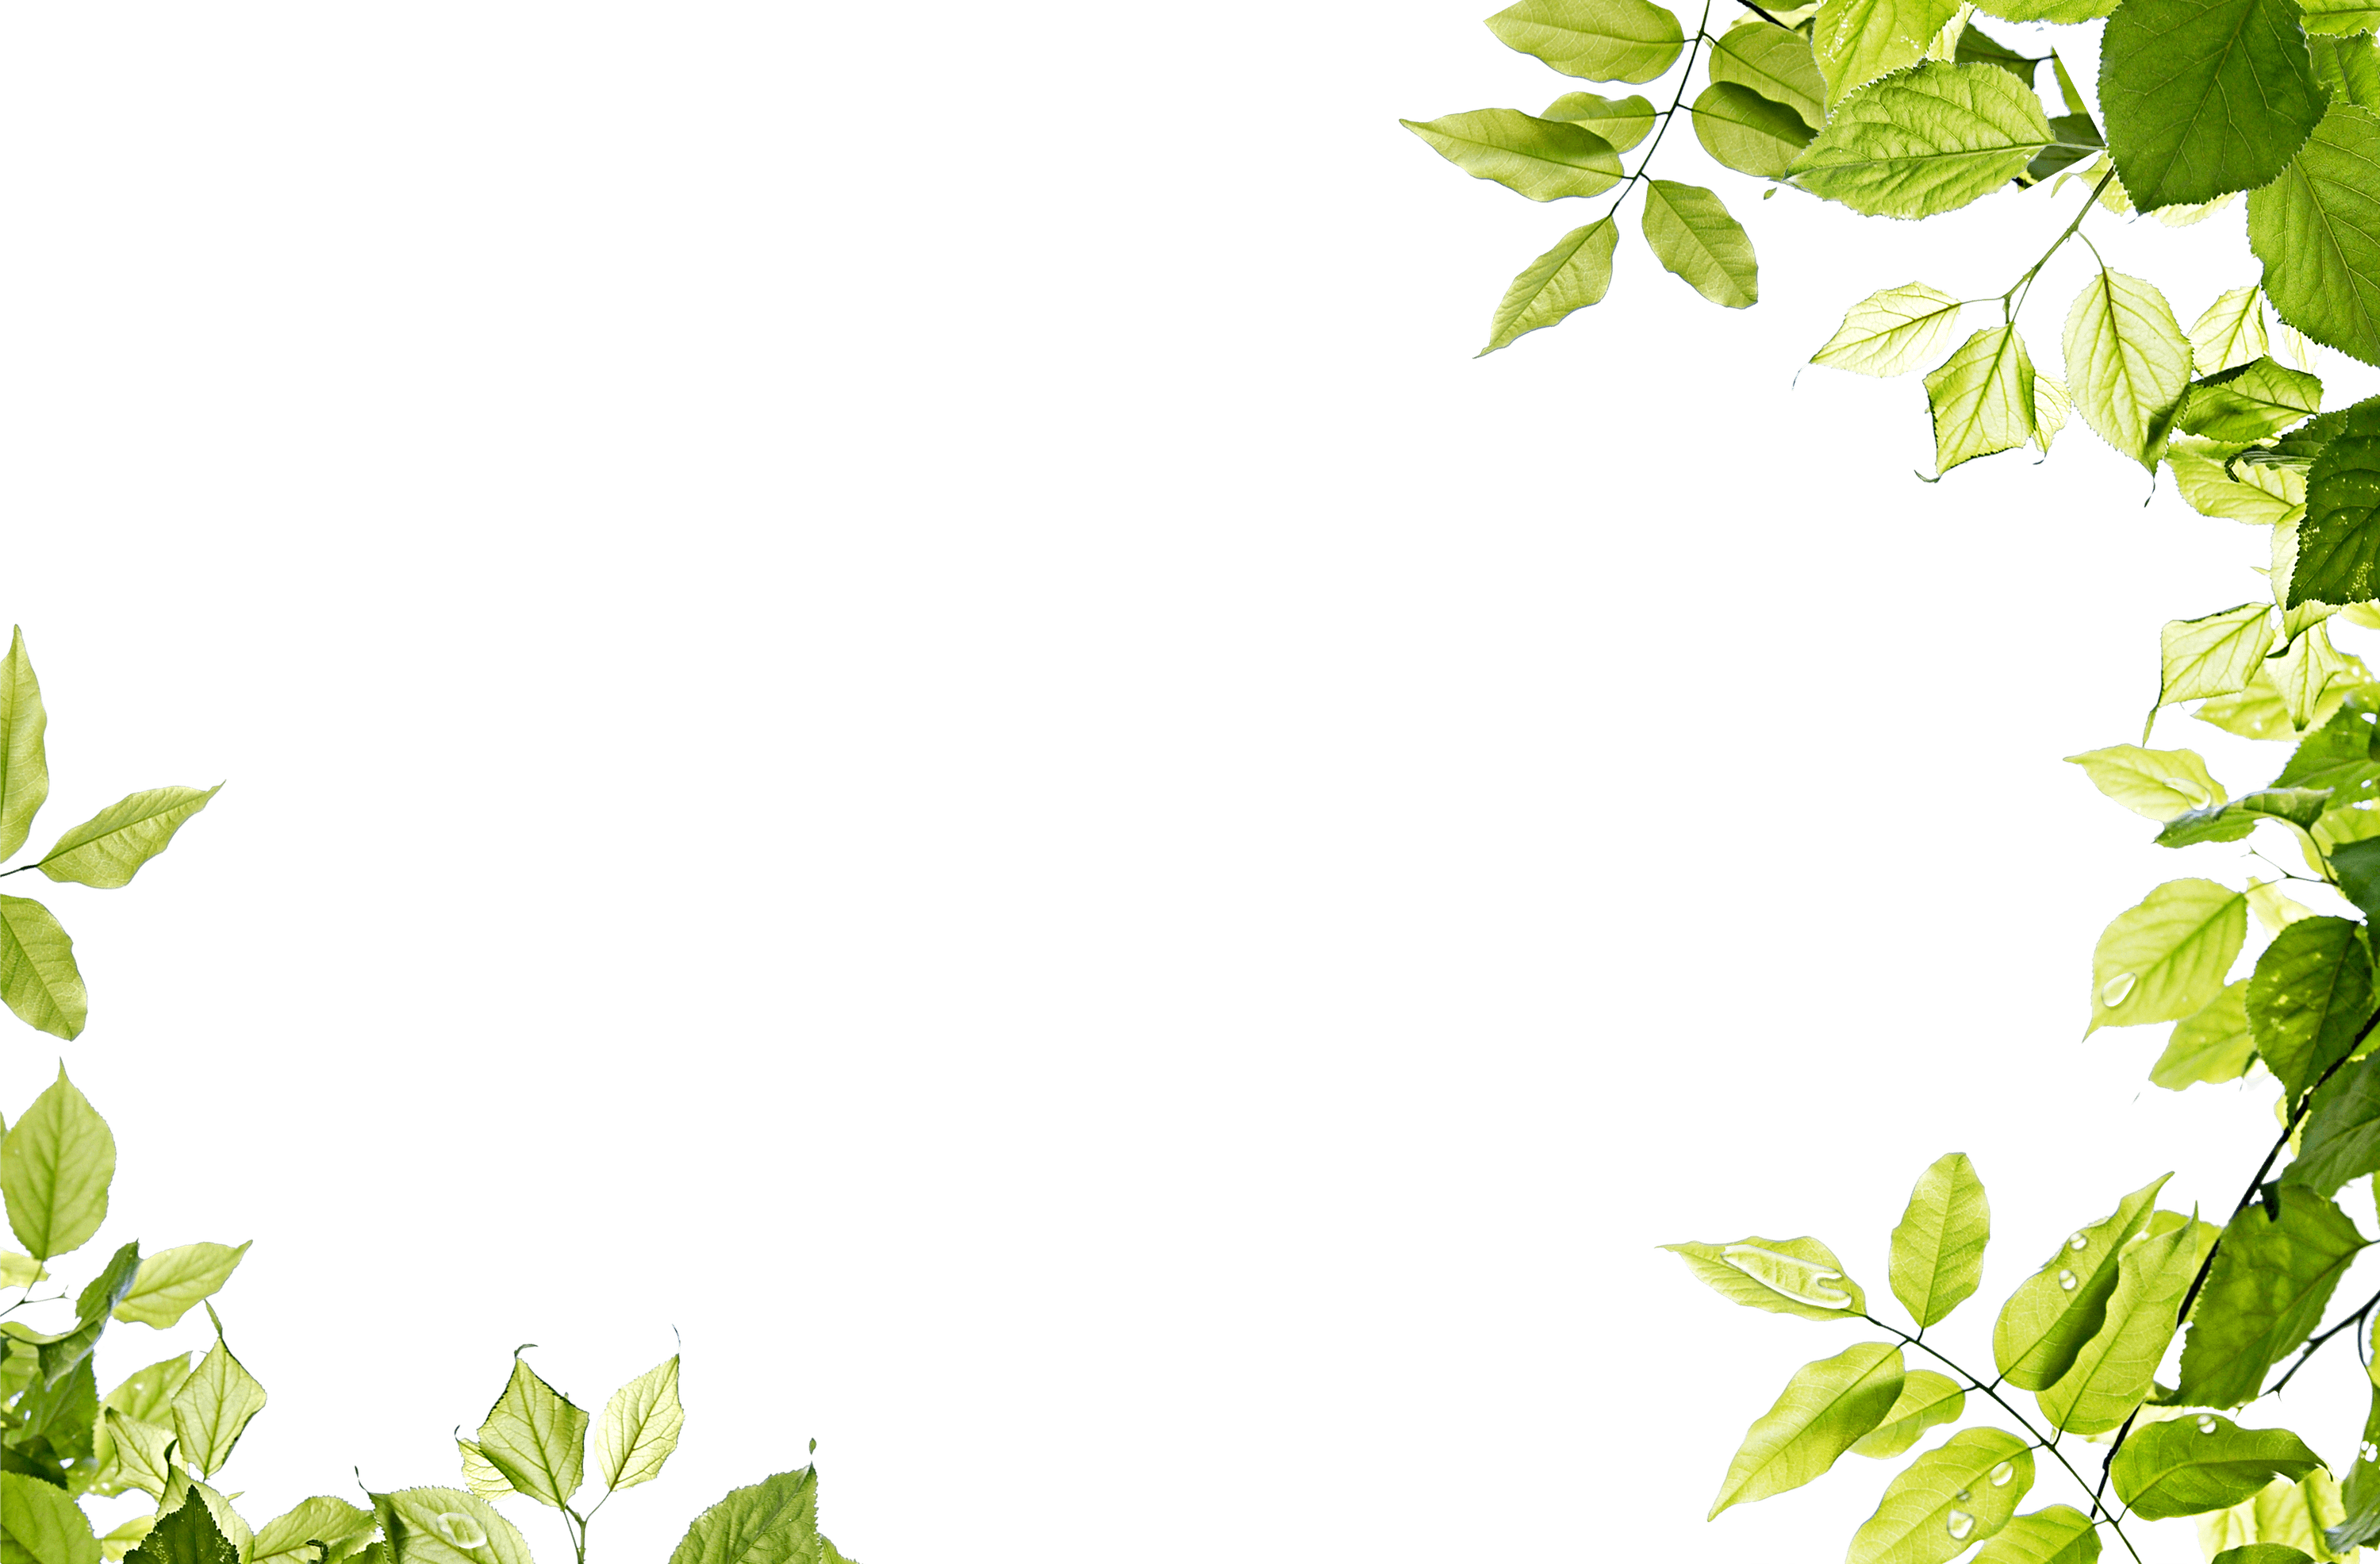 Nature clipart frame. Leaves transparent png stickpng